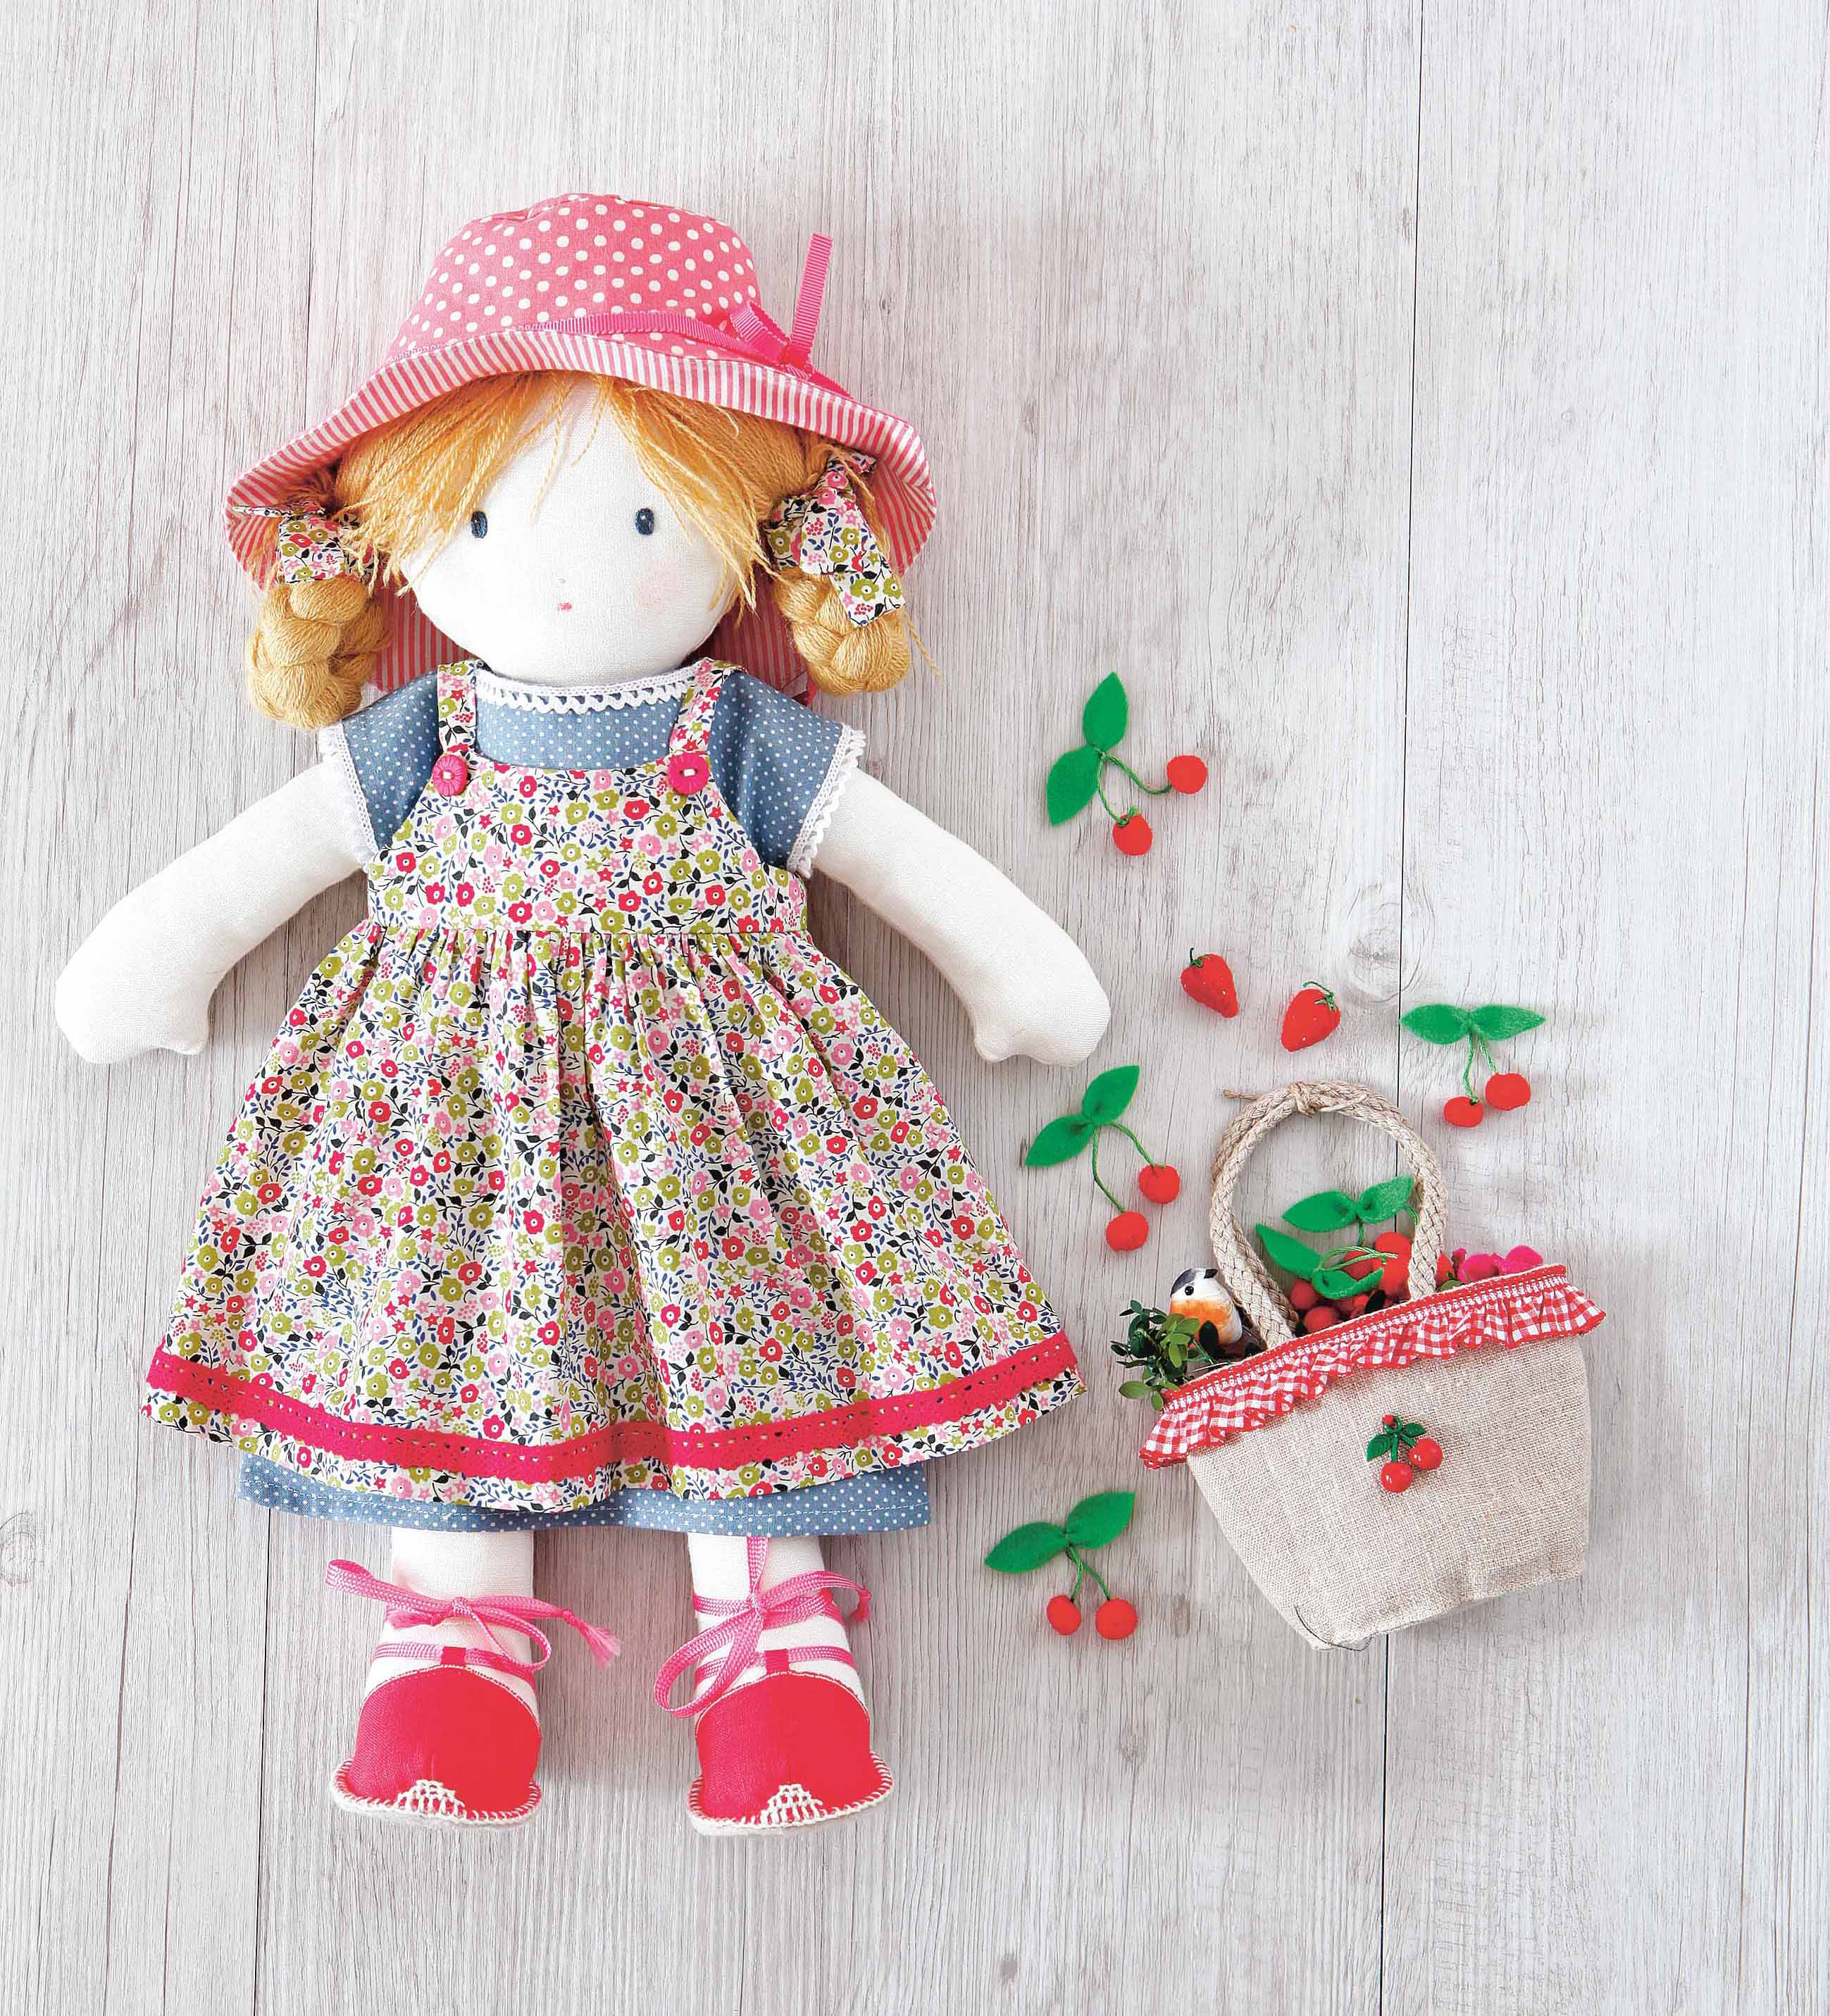 Doll Patterns Best Of My Rag Doll Adorable Dolls to Sew Of Doll Patterns Fresh Spirit Dolls